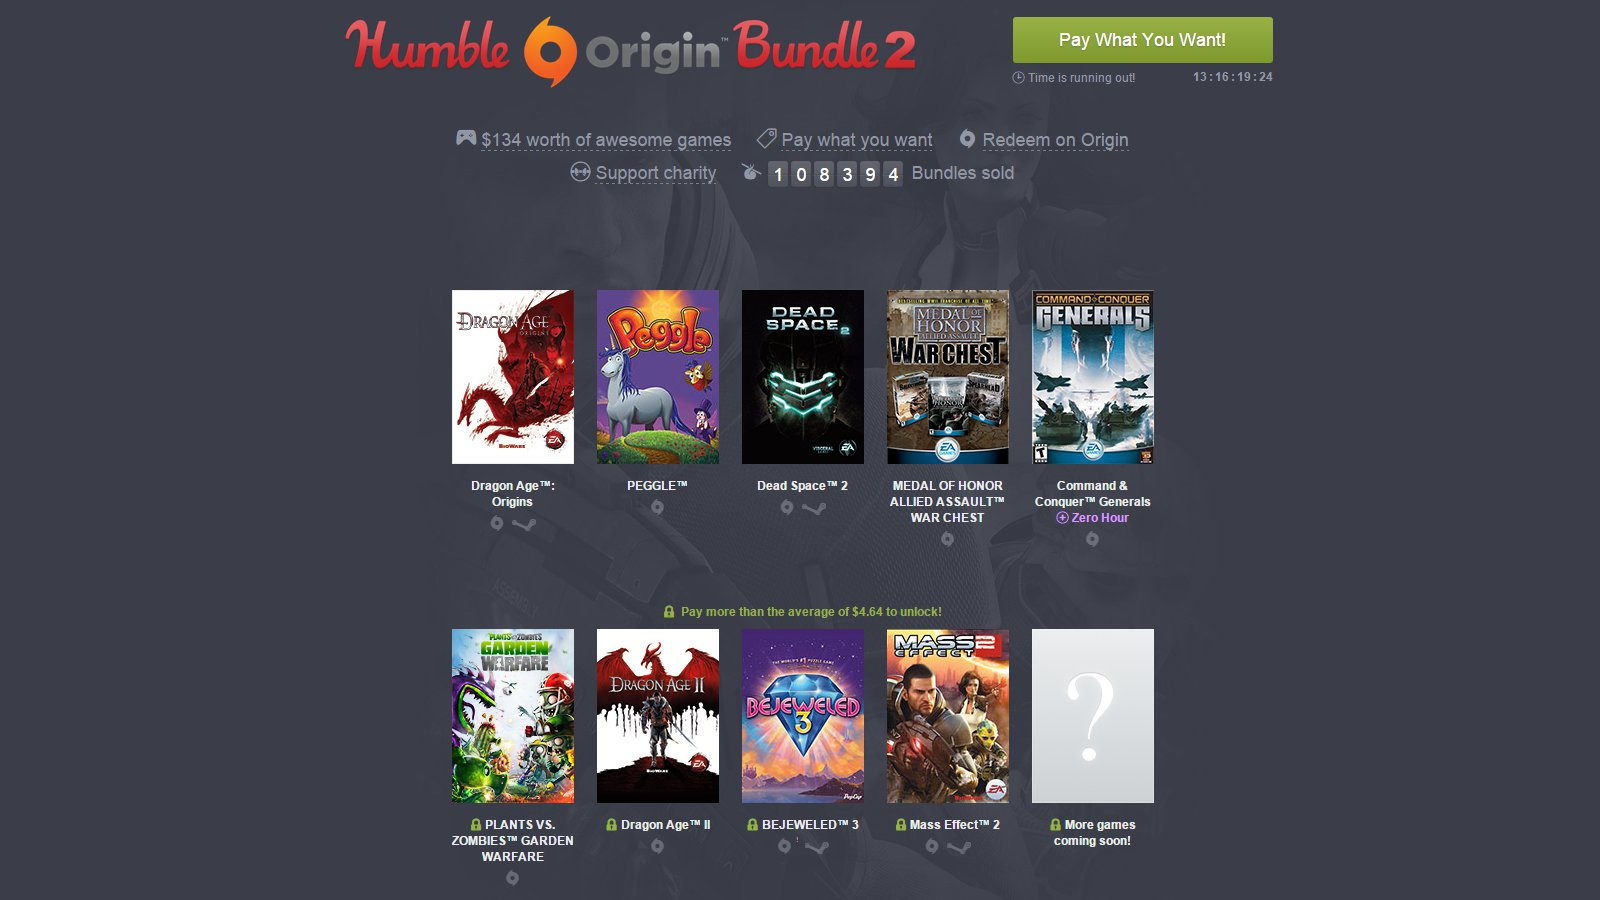 Humble Origin Bundle 2